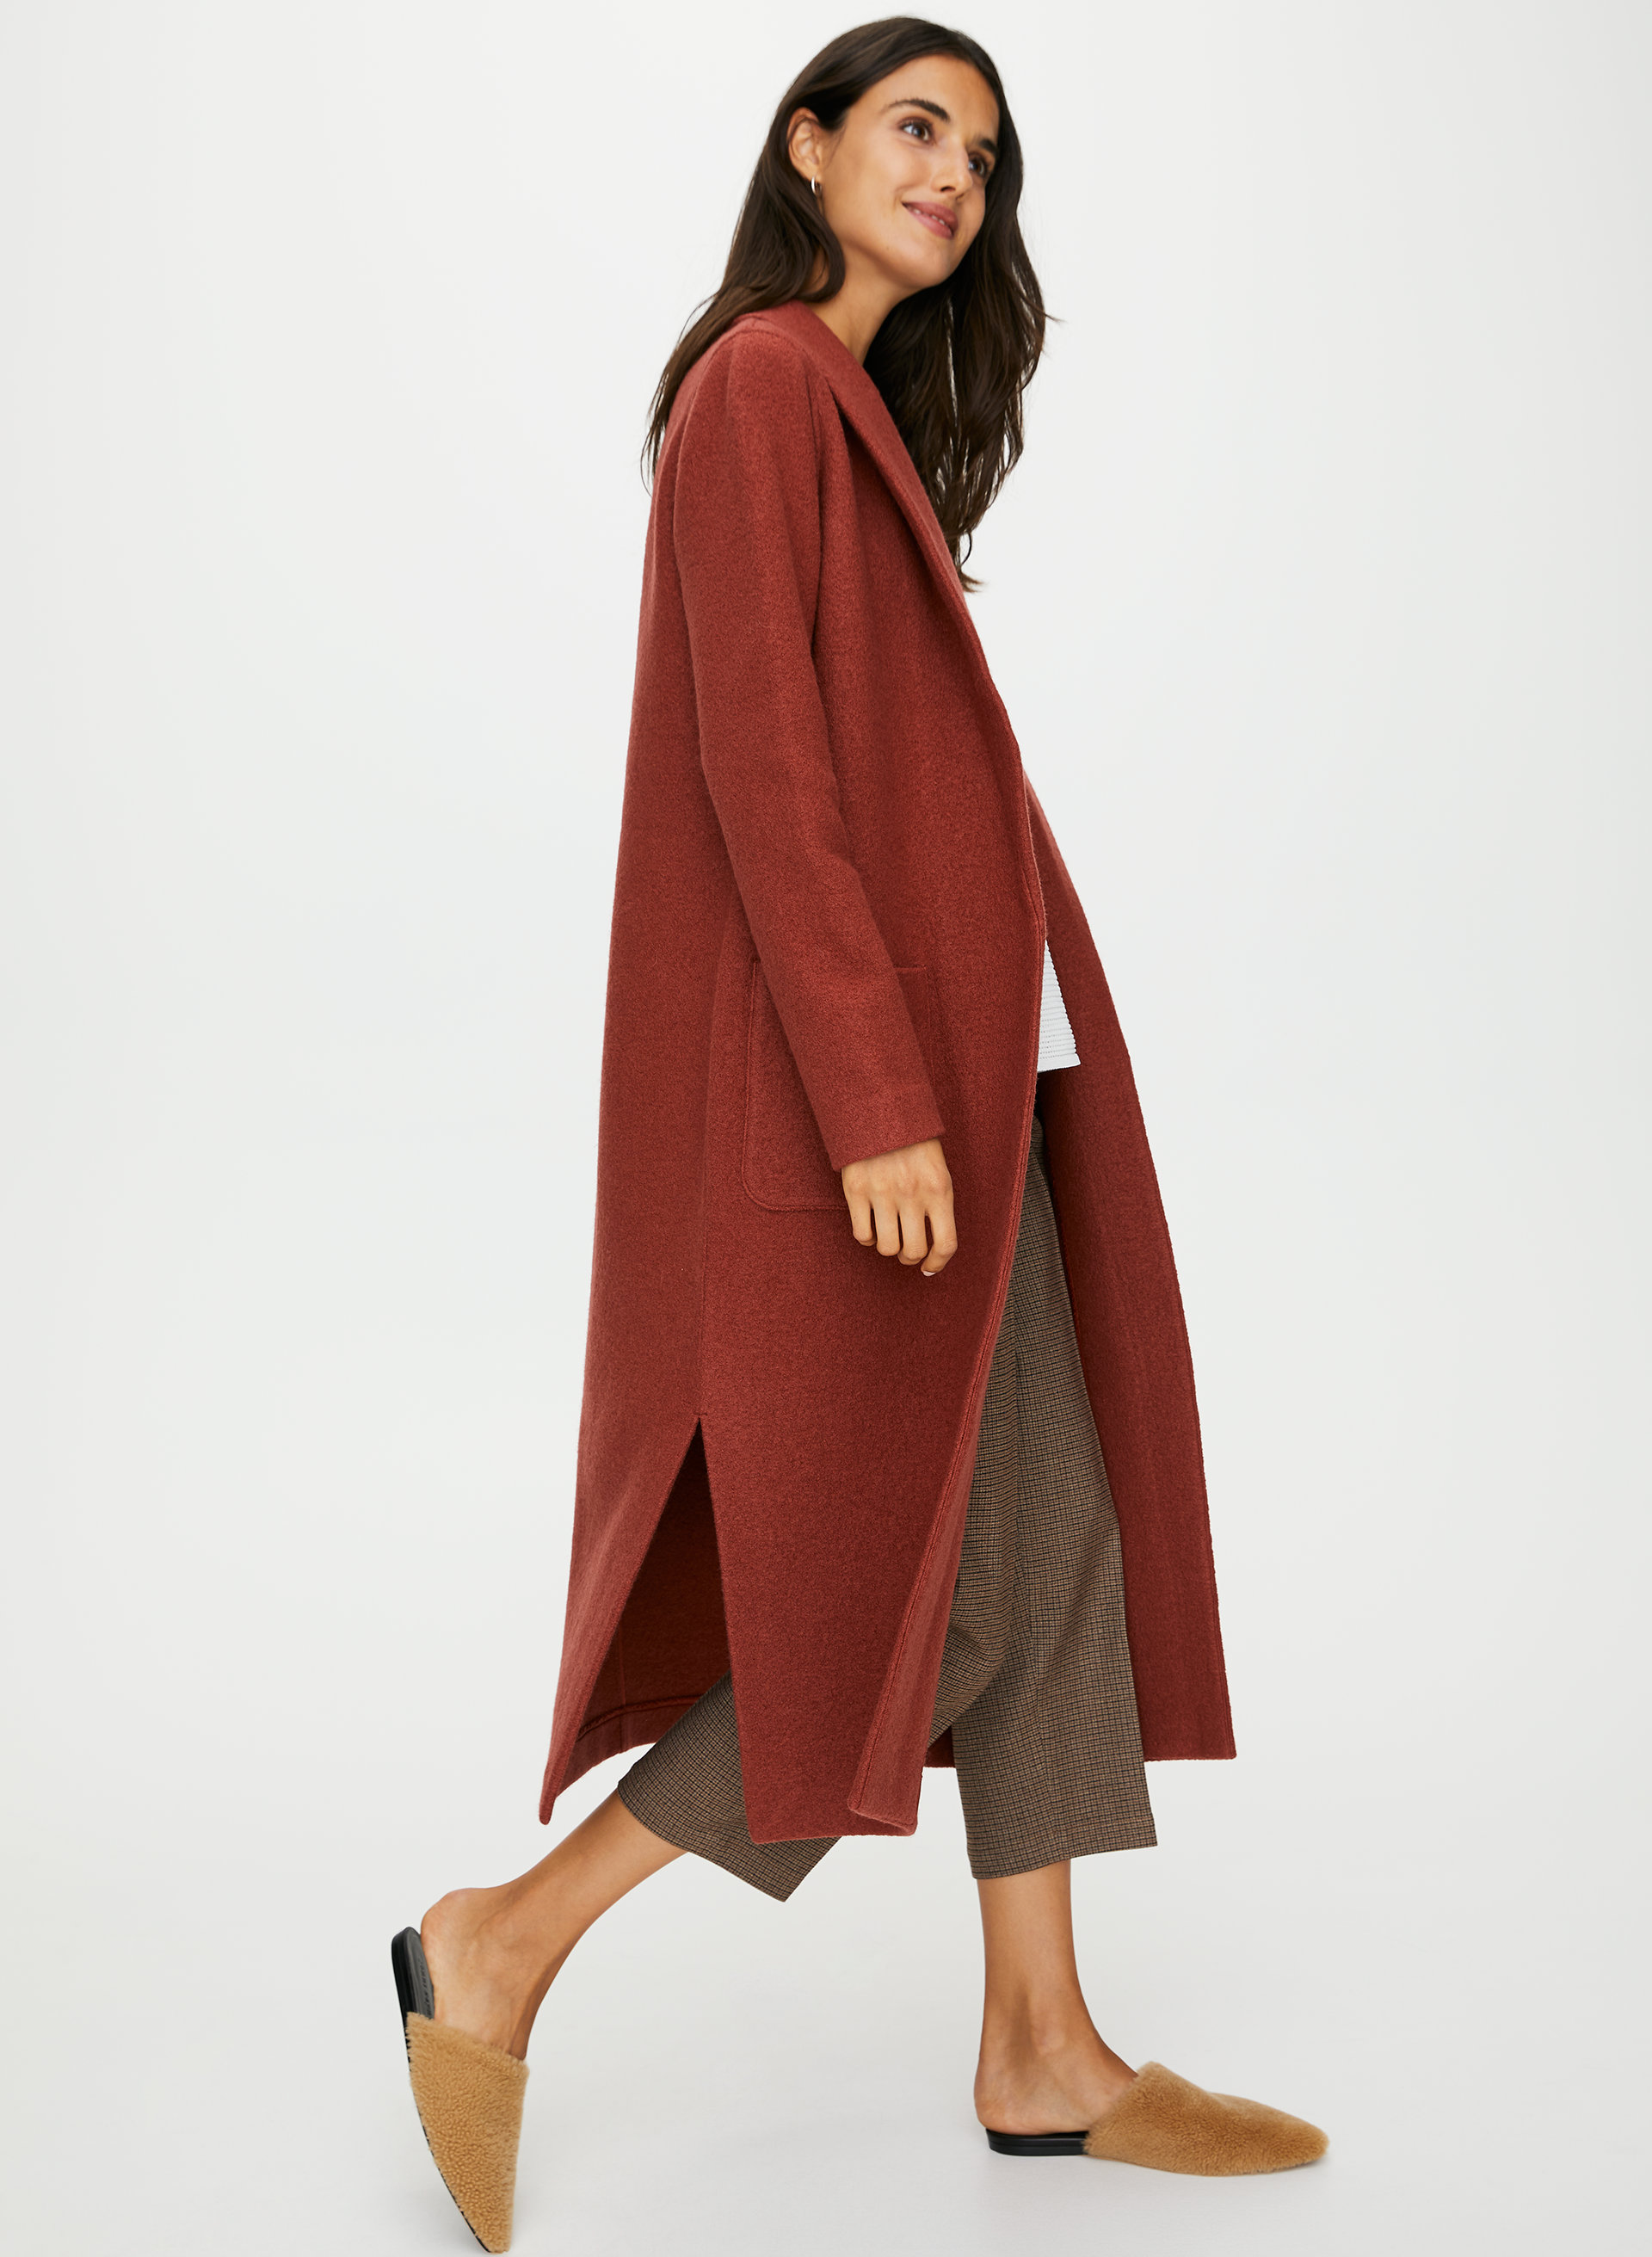 top style great variety models top quality The Group by Babaton LUXE LOUNGE WOOL JACKET | Aritzia US